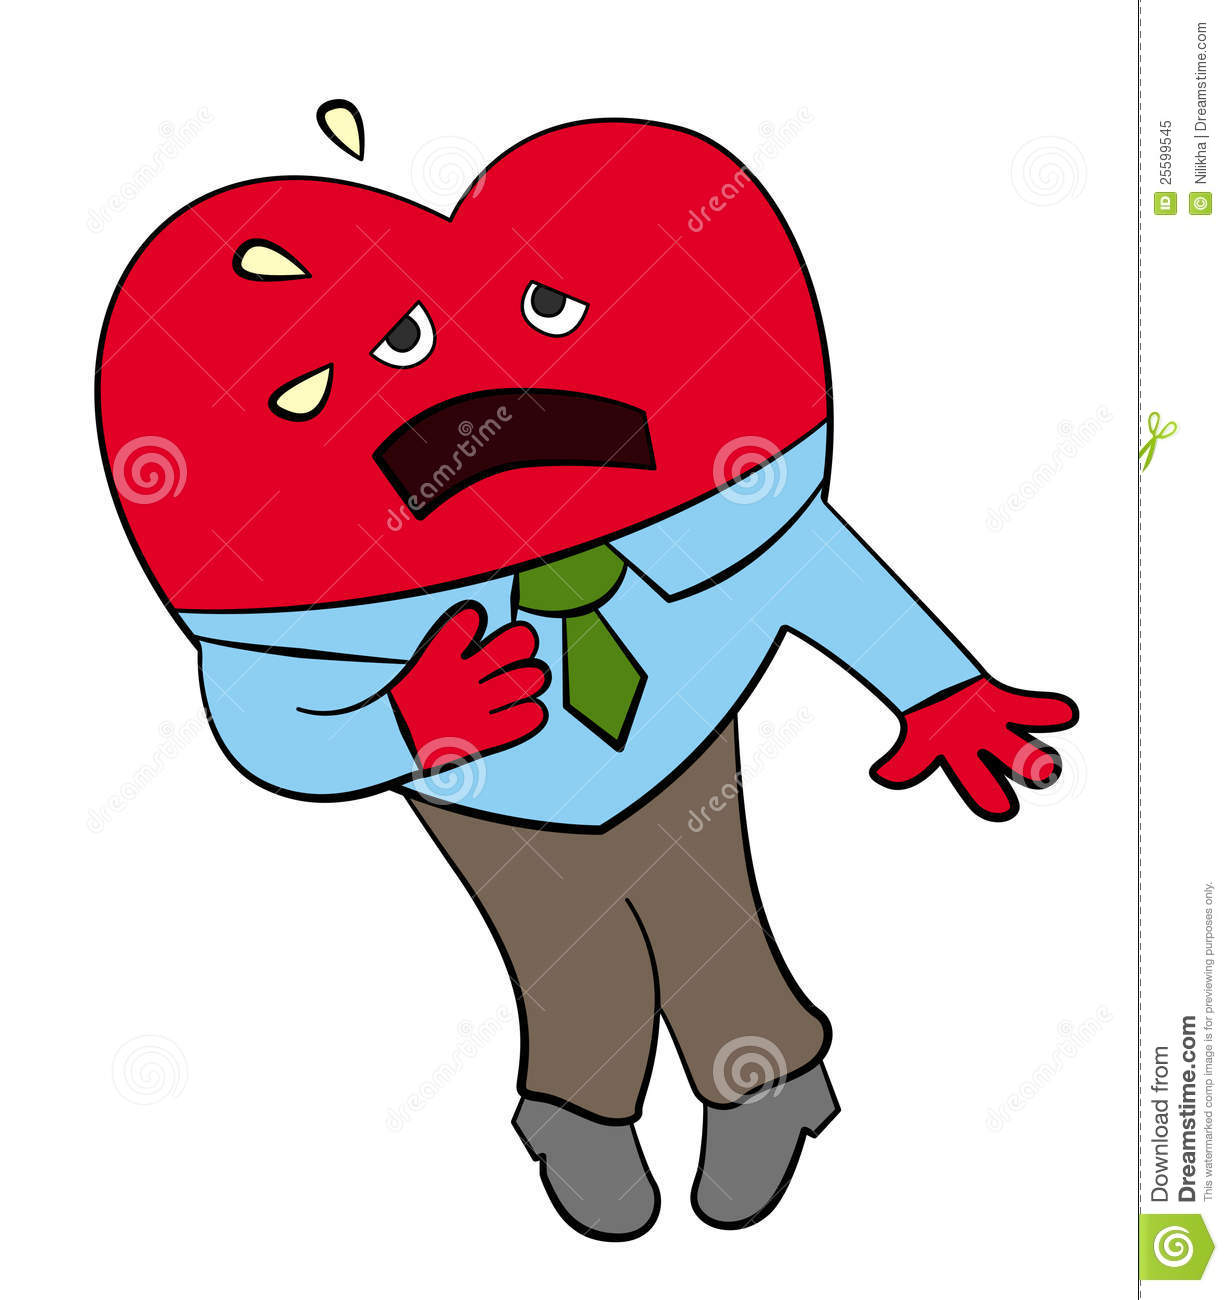 Image result for heart failure clipart